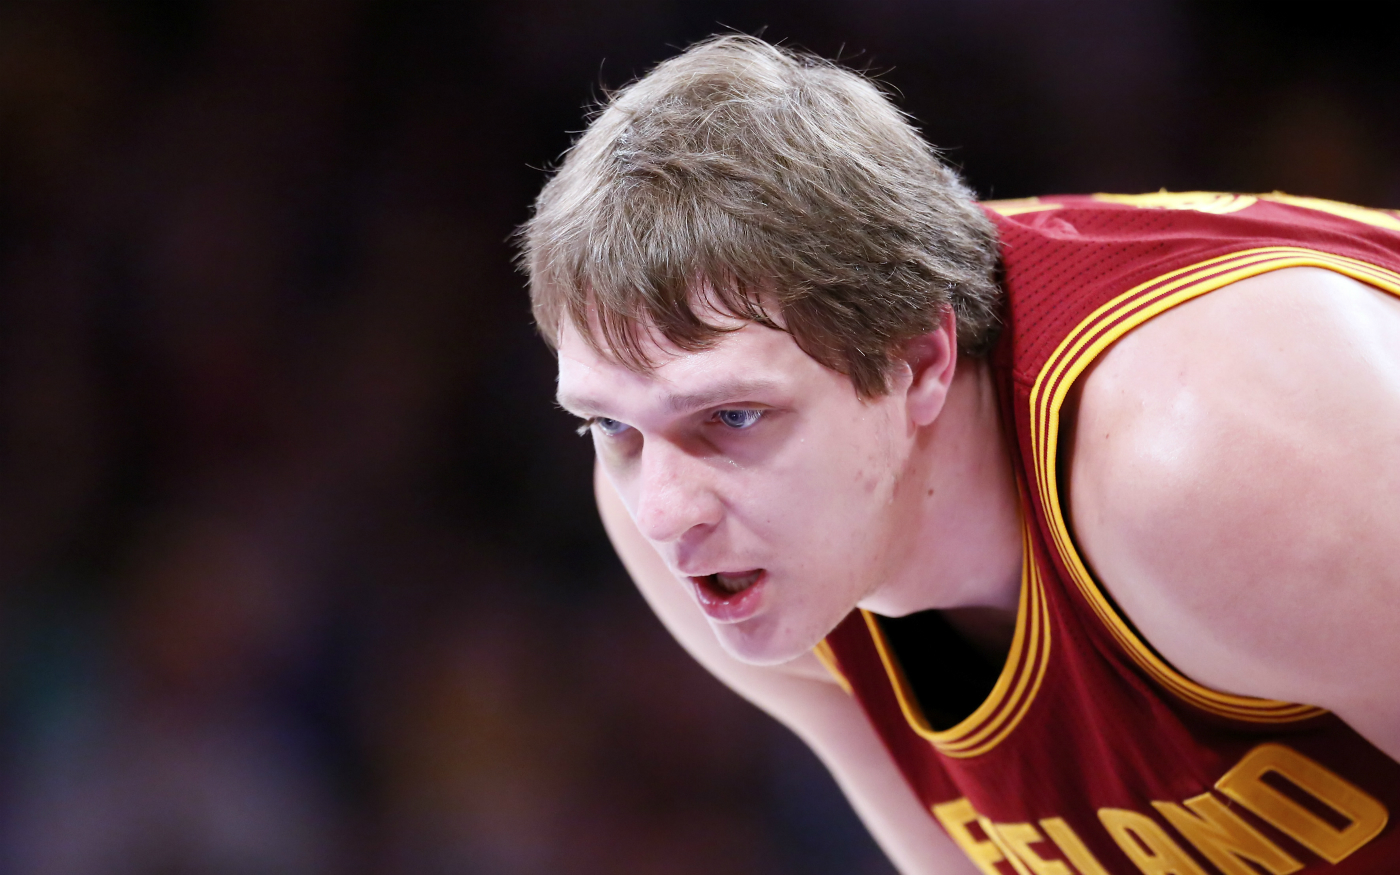 Lakers : Timofey Mozgov touché aux adducteurs